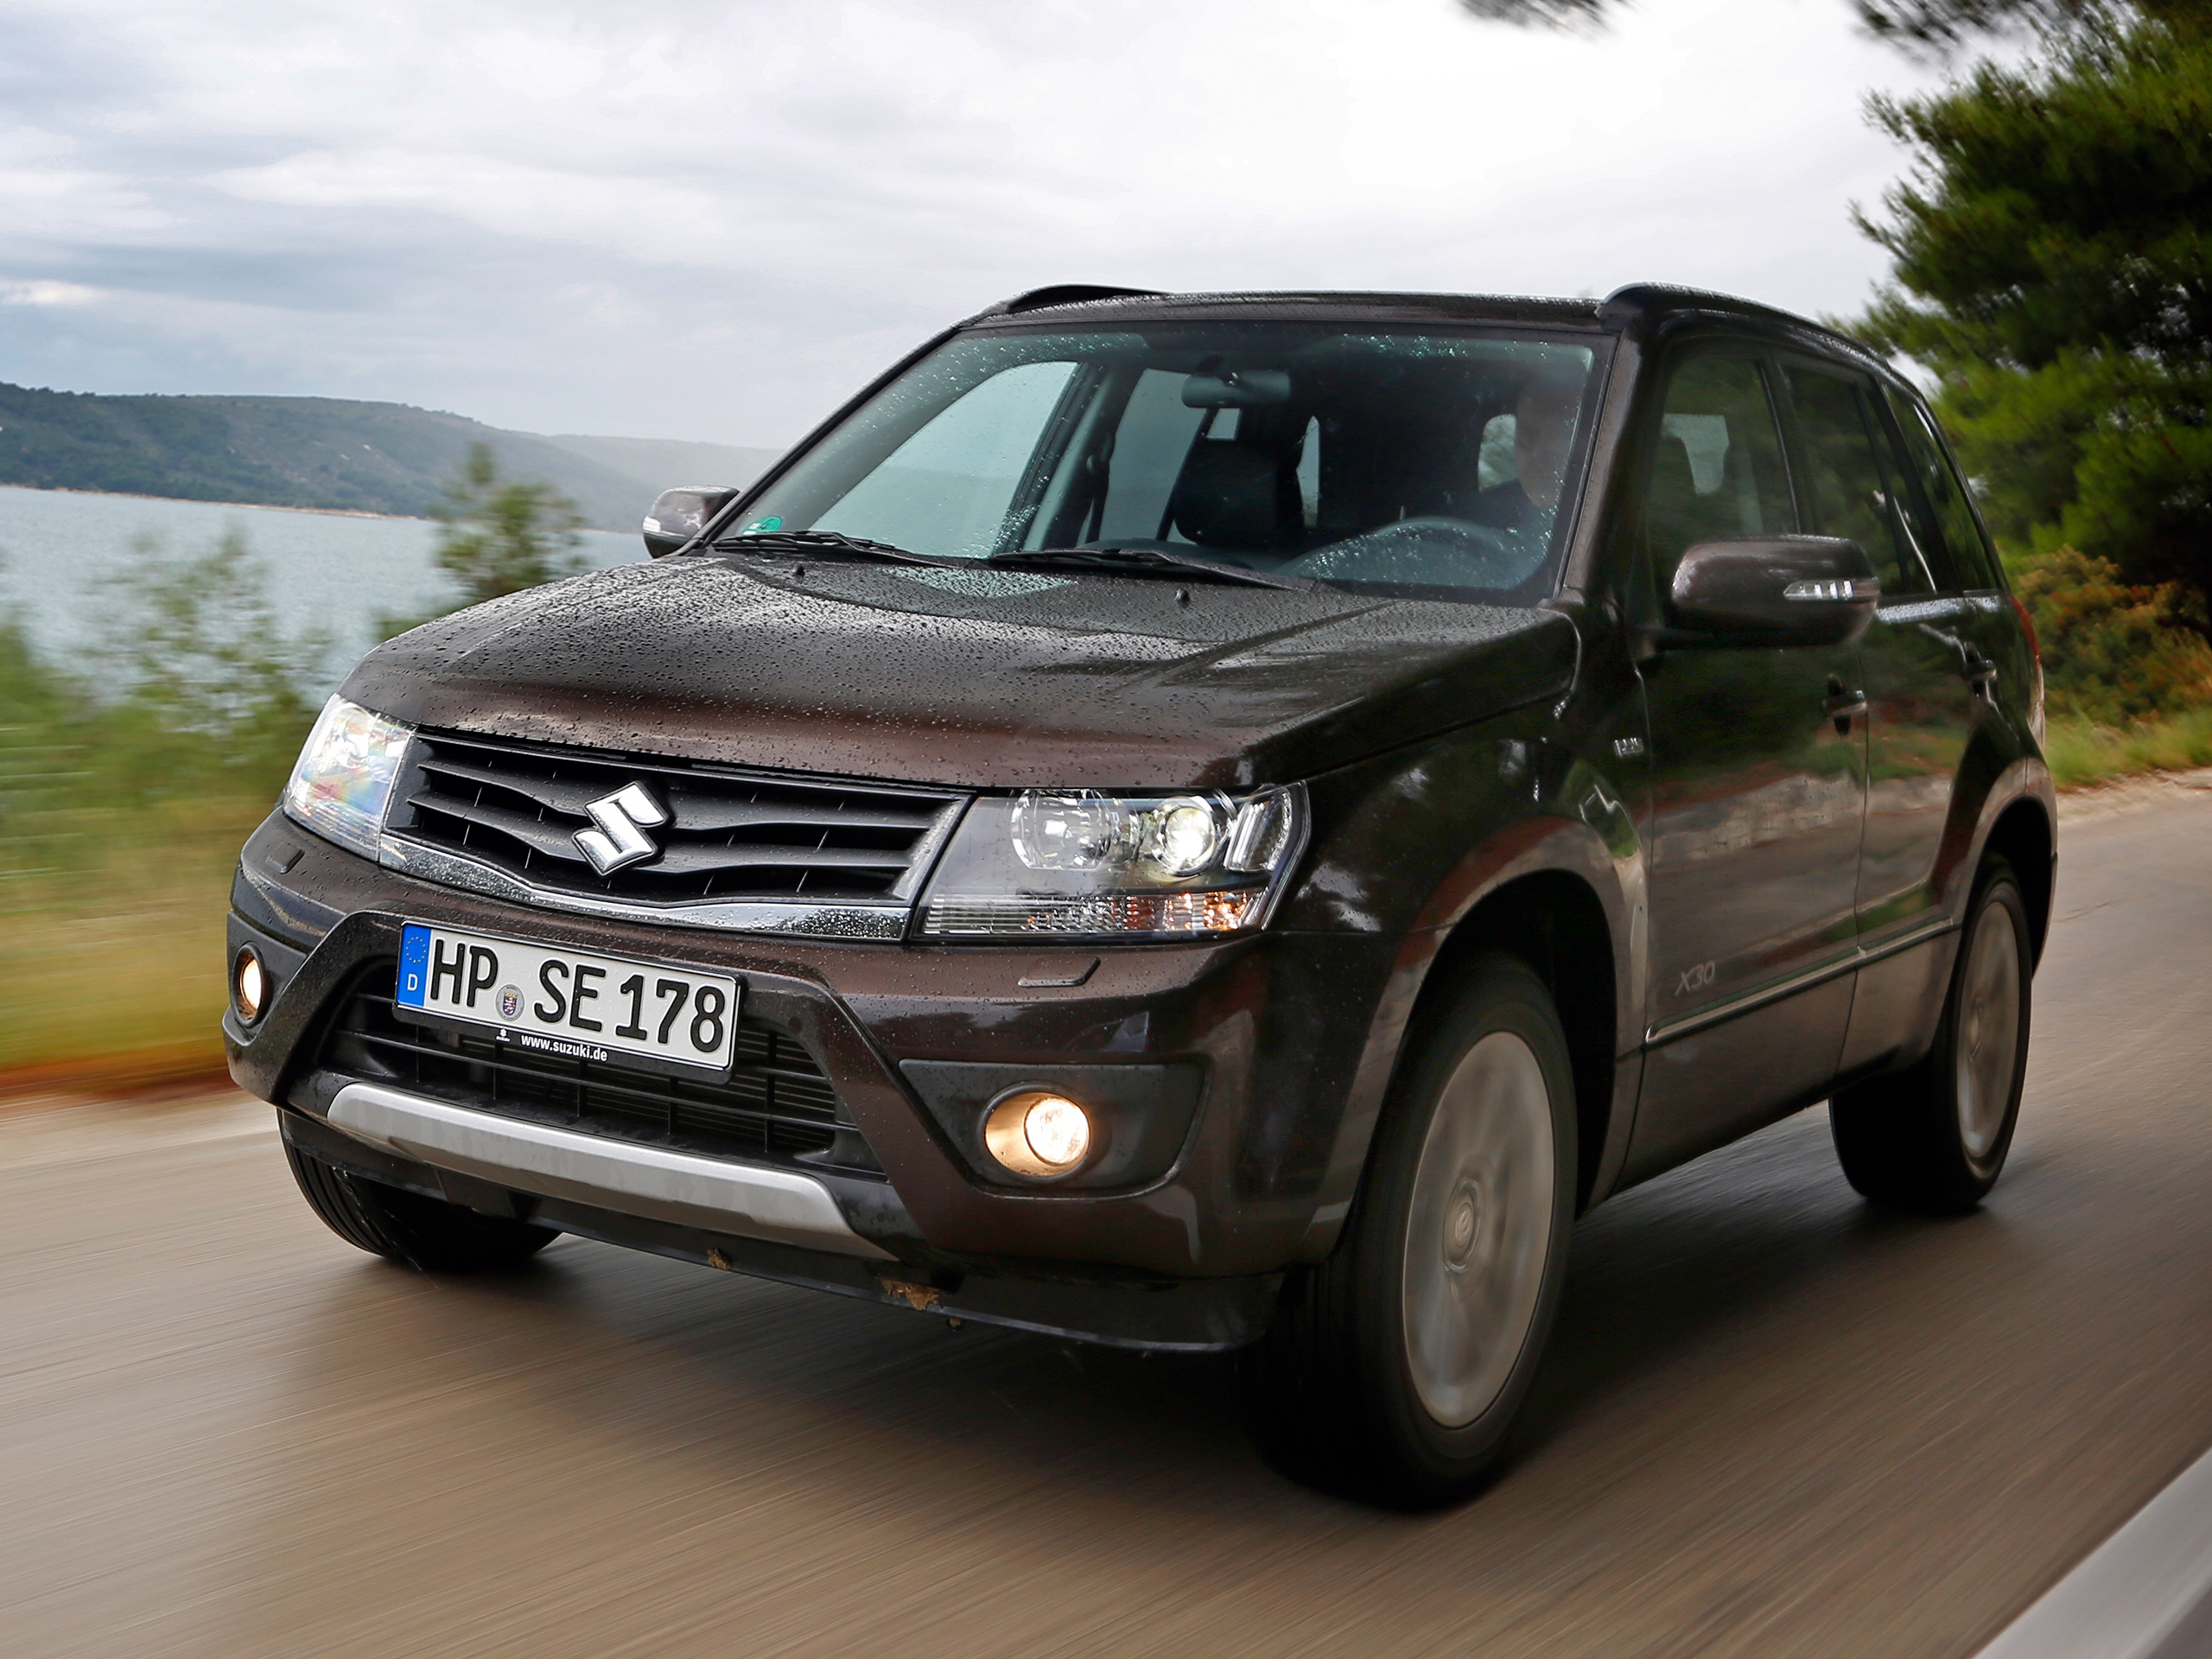 suzuki grand vitara 2 4 2013 facelift im fahrbericht. Black Bedroom Furniture Sets. Home Design Ideas